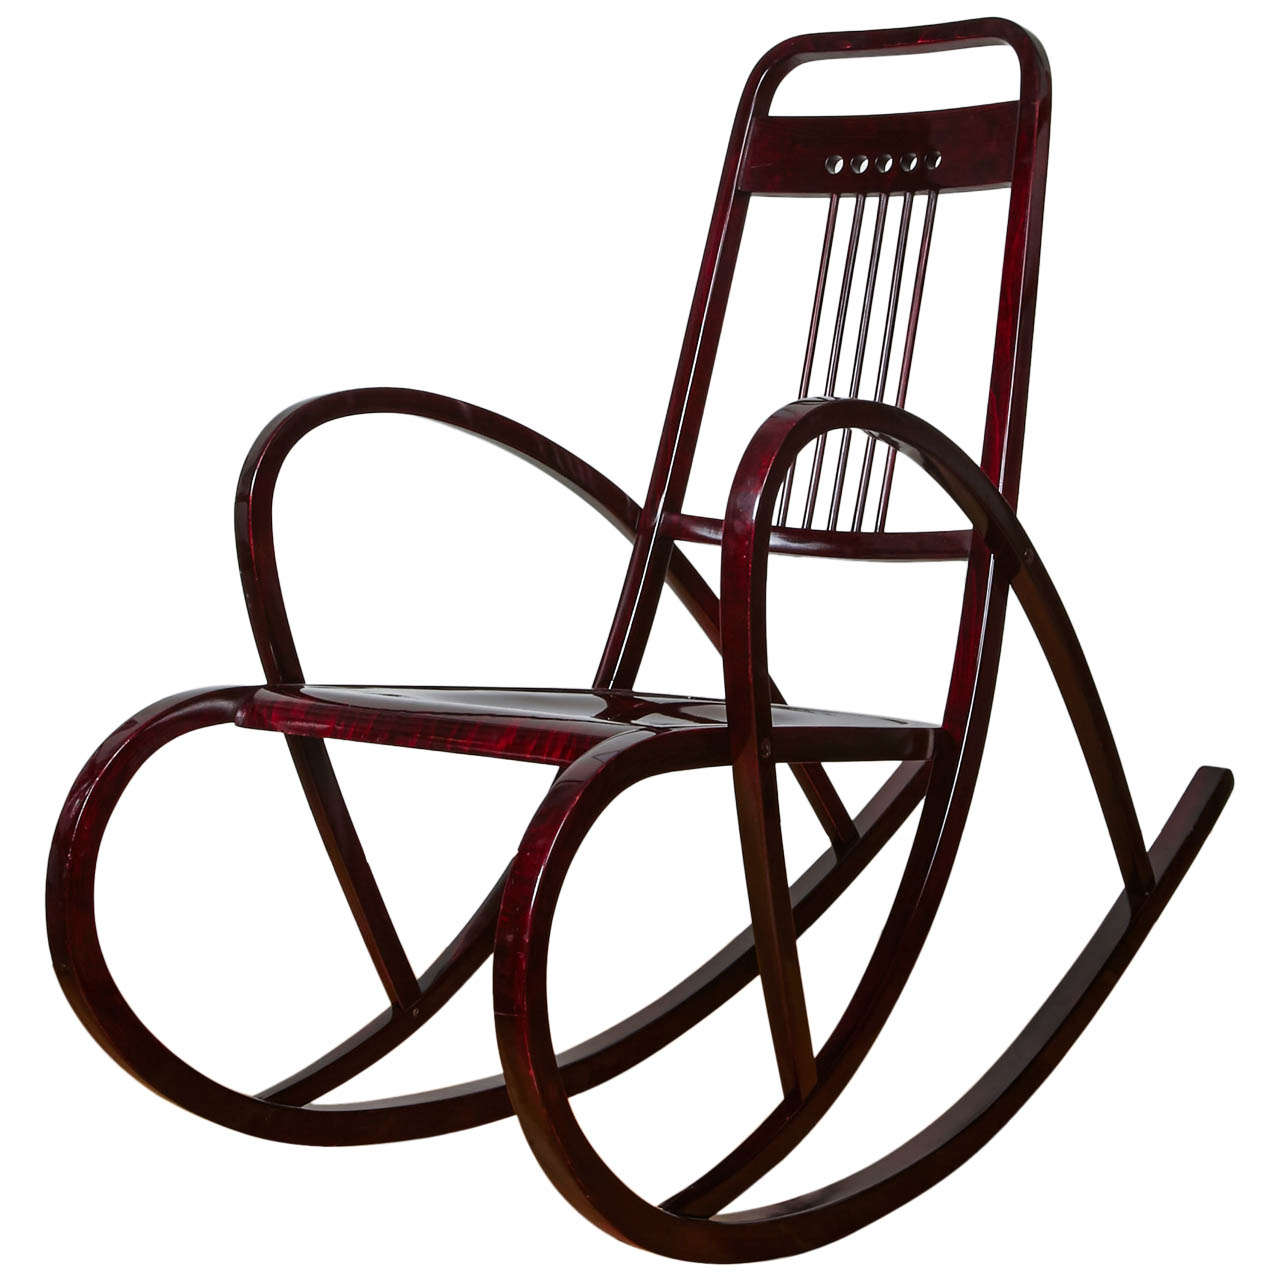 Viennese Secession Rocking Chair By Thonet Circa 1911 At